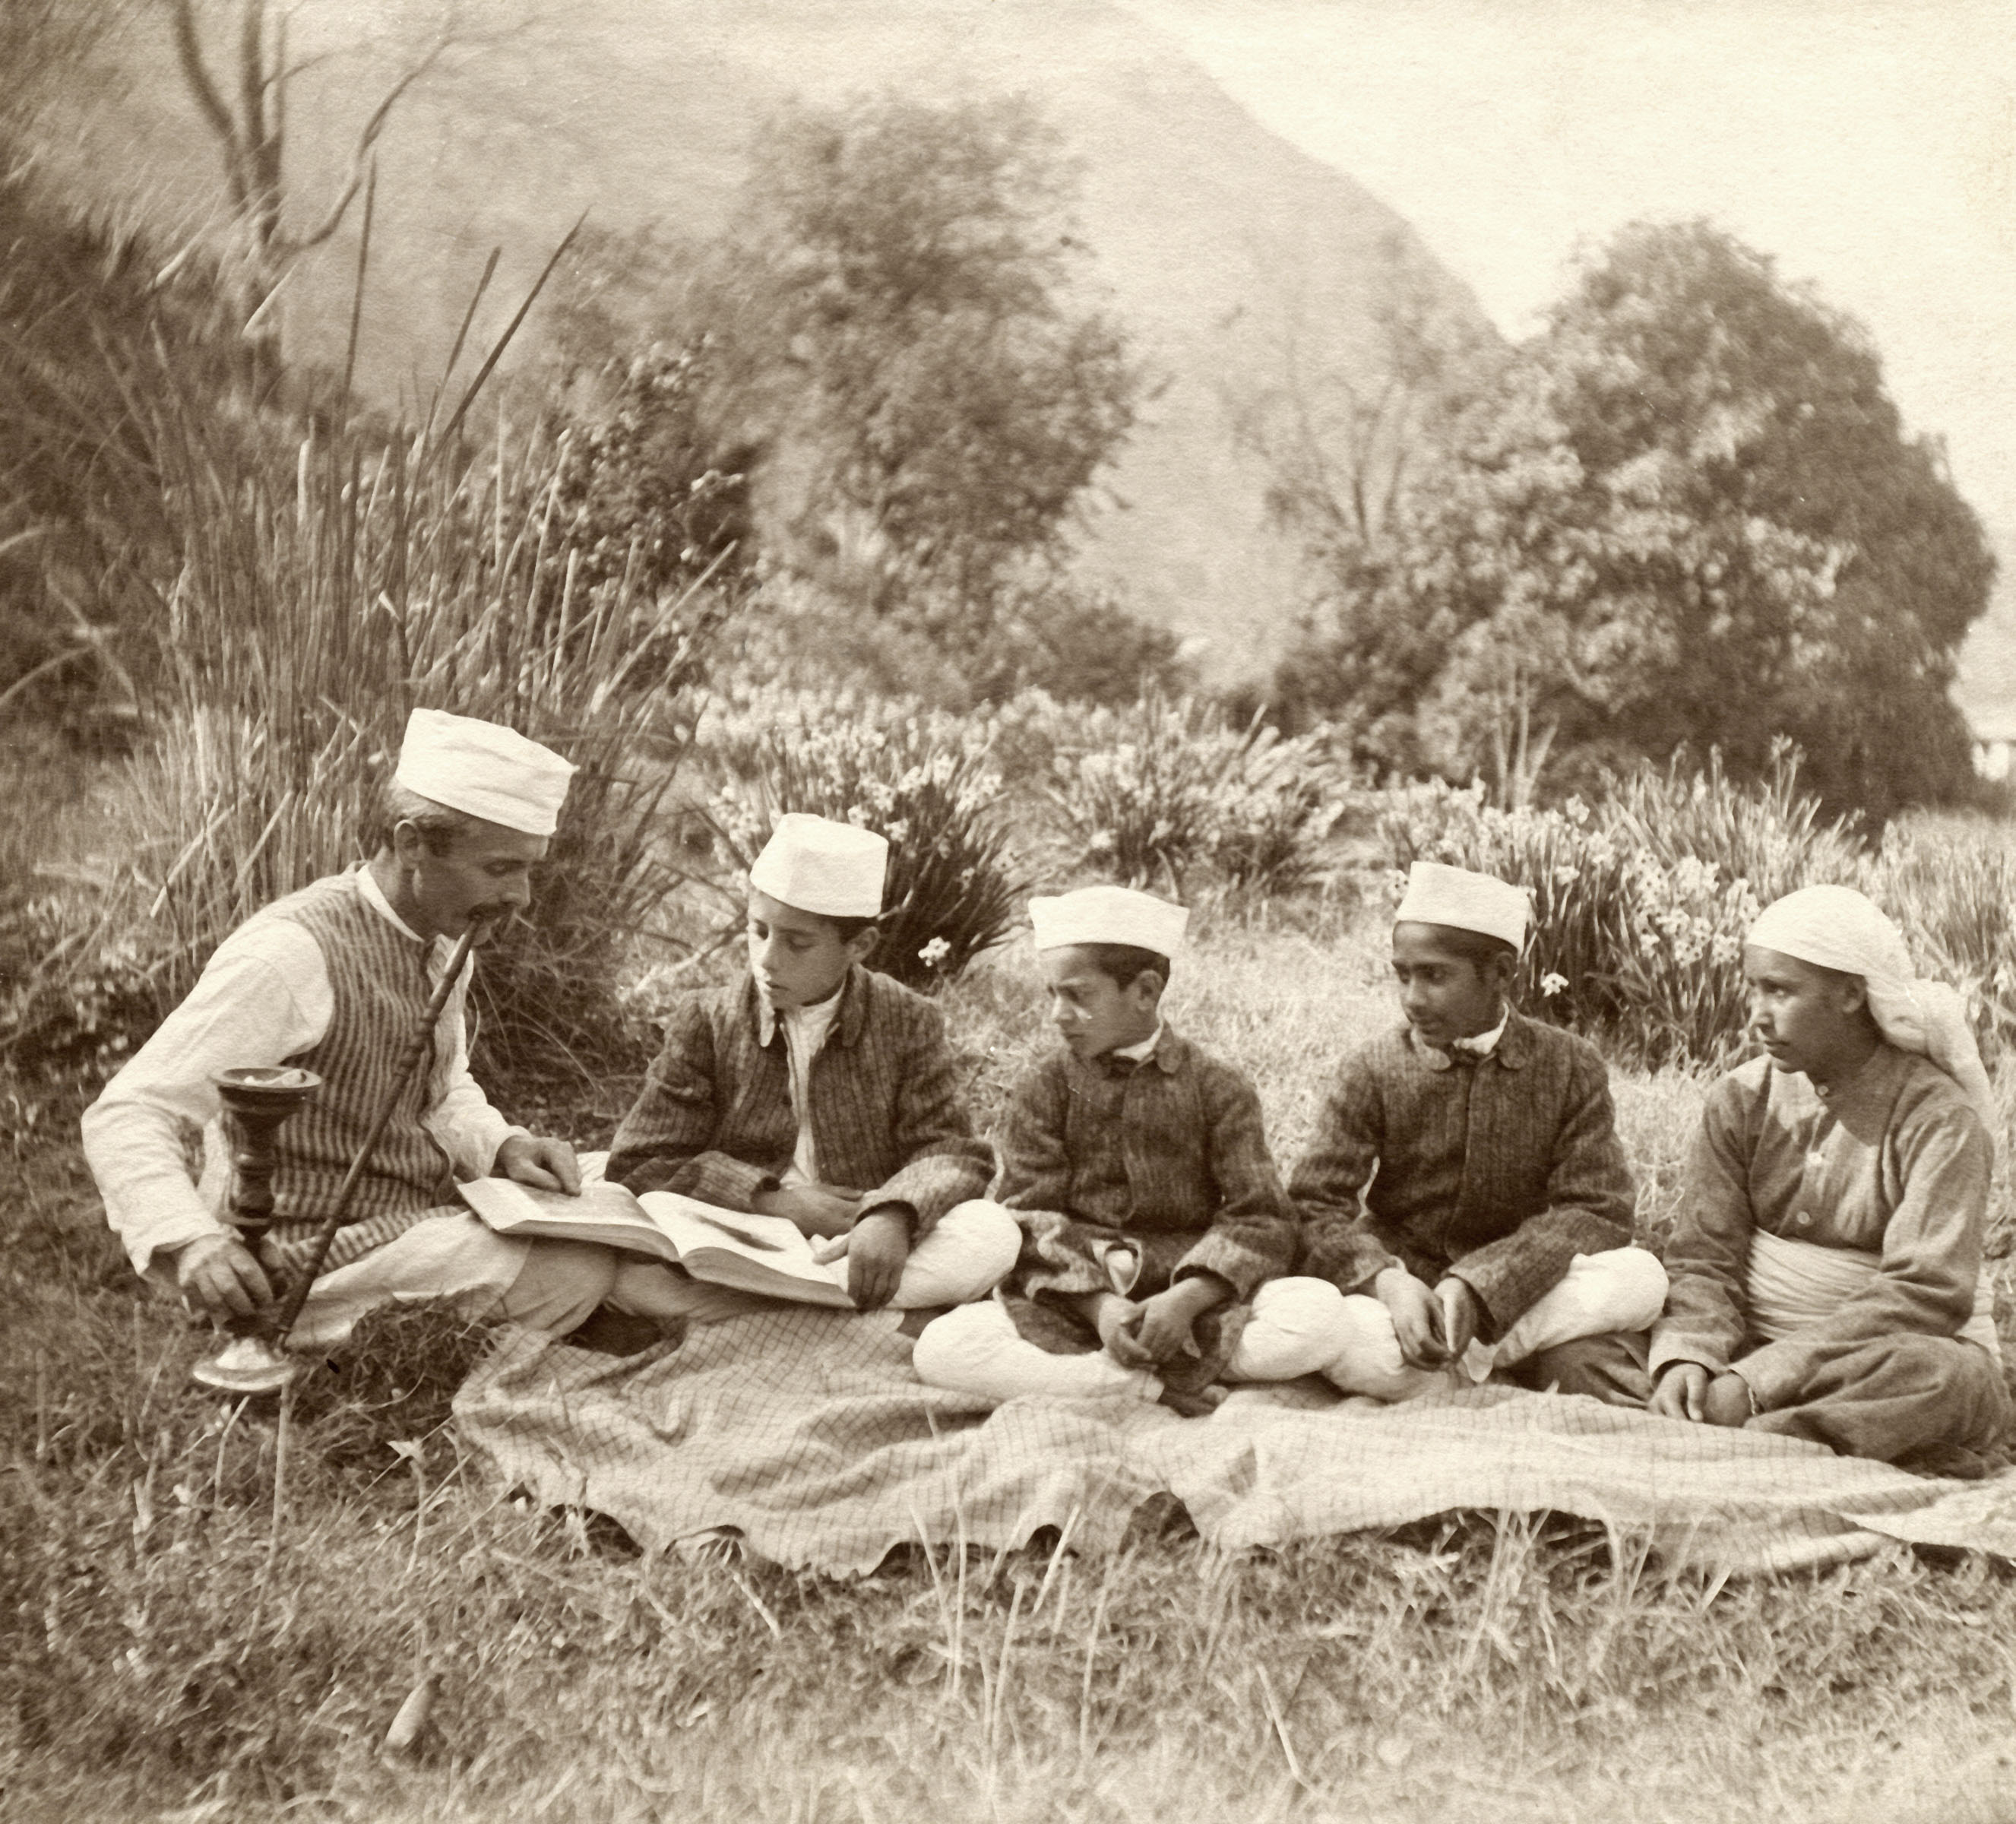 Samuel Stokes teaching an outdoor class, c. 1930 Shimla, Himachal Pradesh